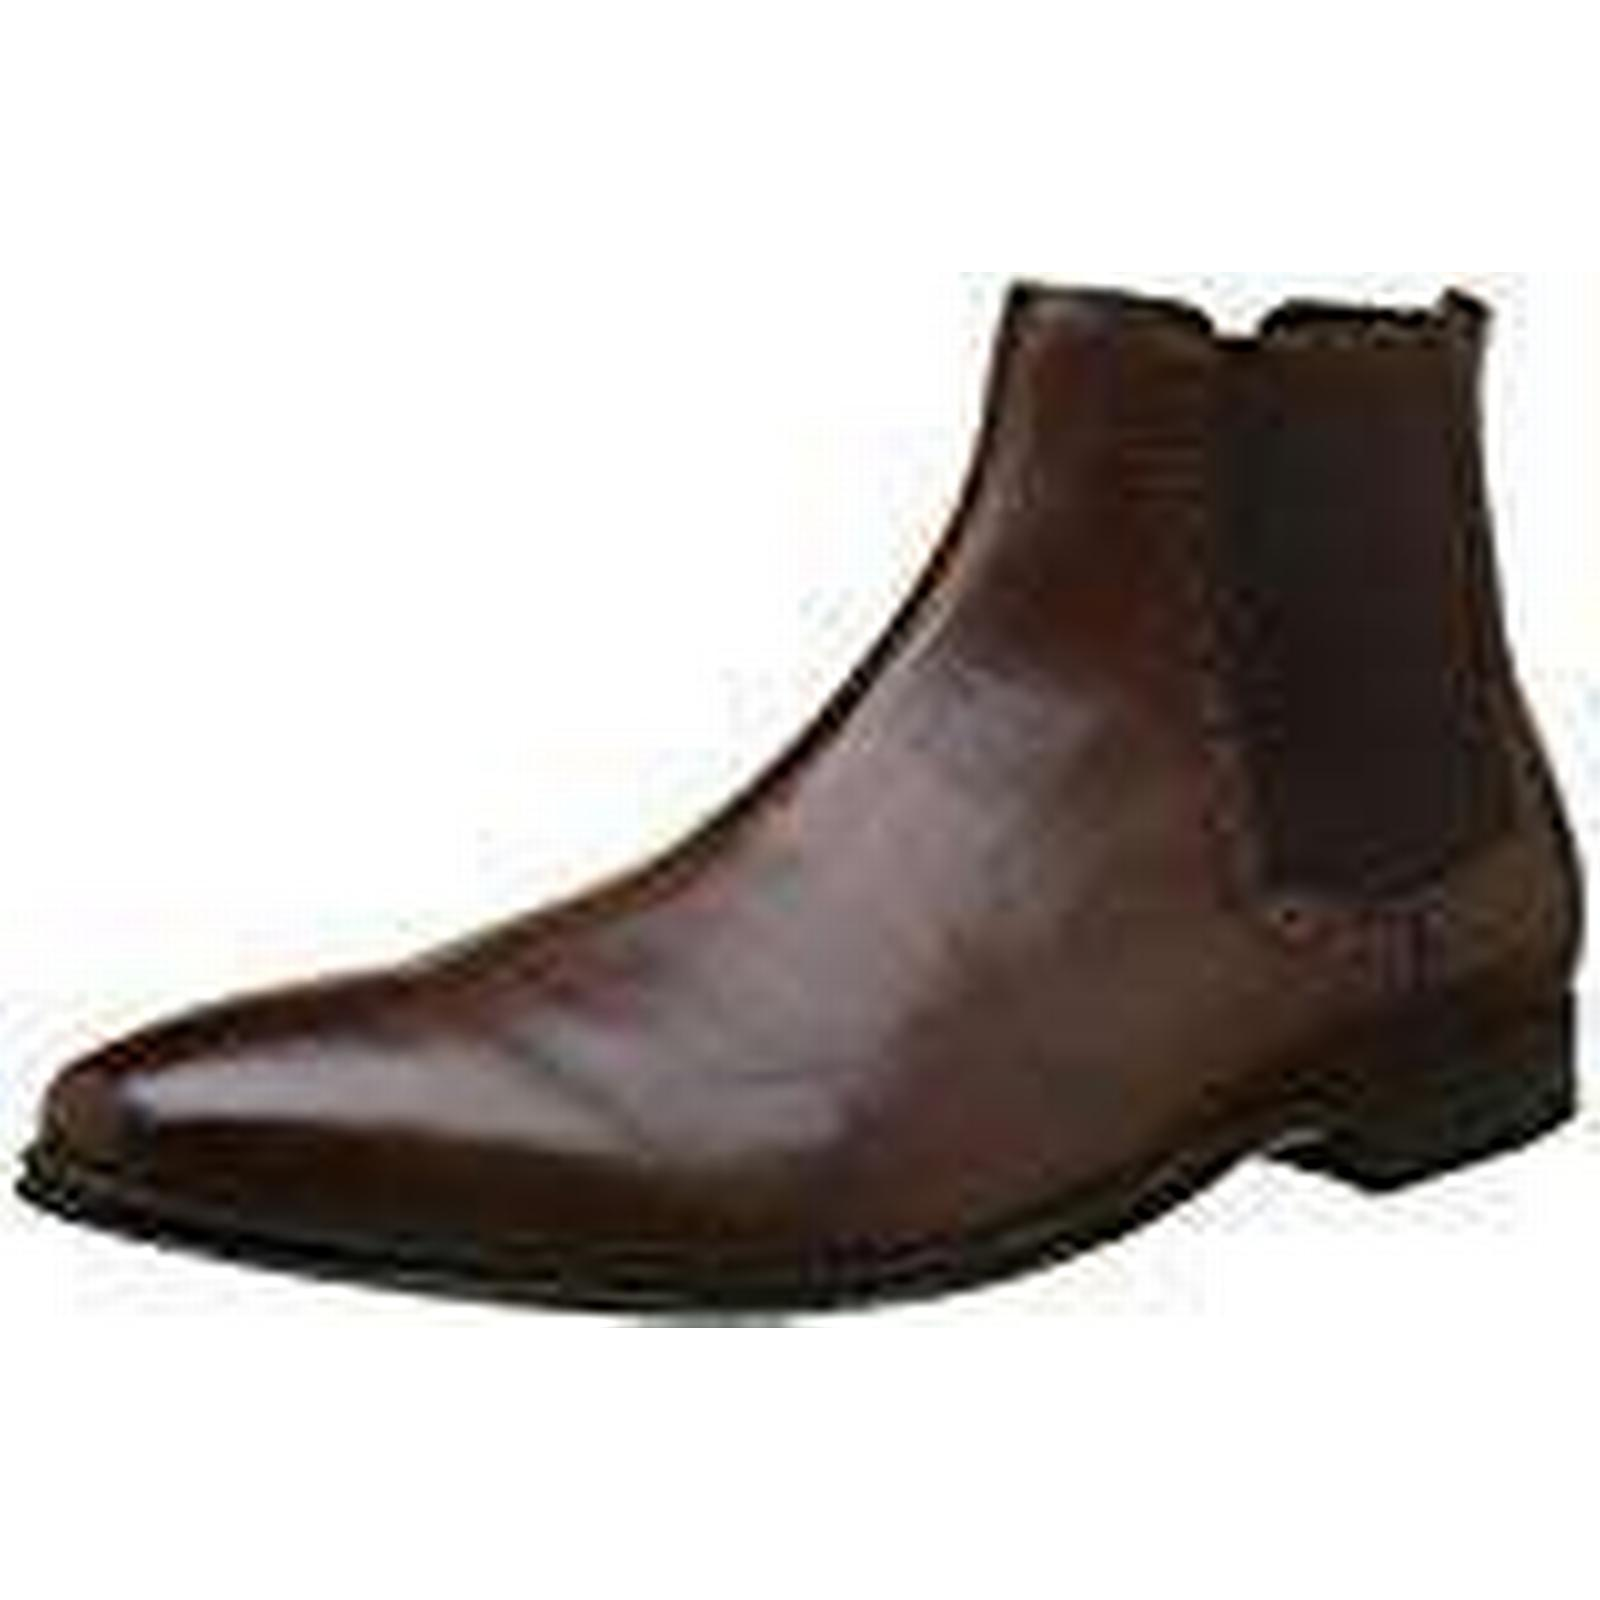 New Look Men's Leather Chelsea 27), Boots, Brown (Dark Brown 27), Chelsea 10 UK 44 EU 35f069